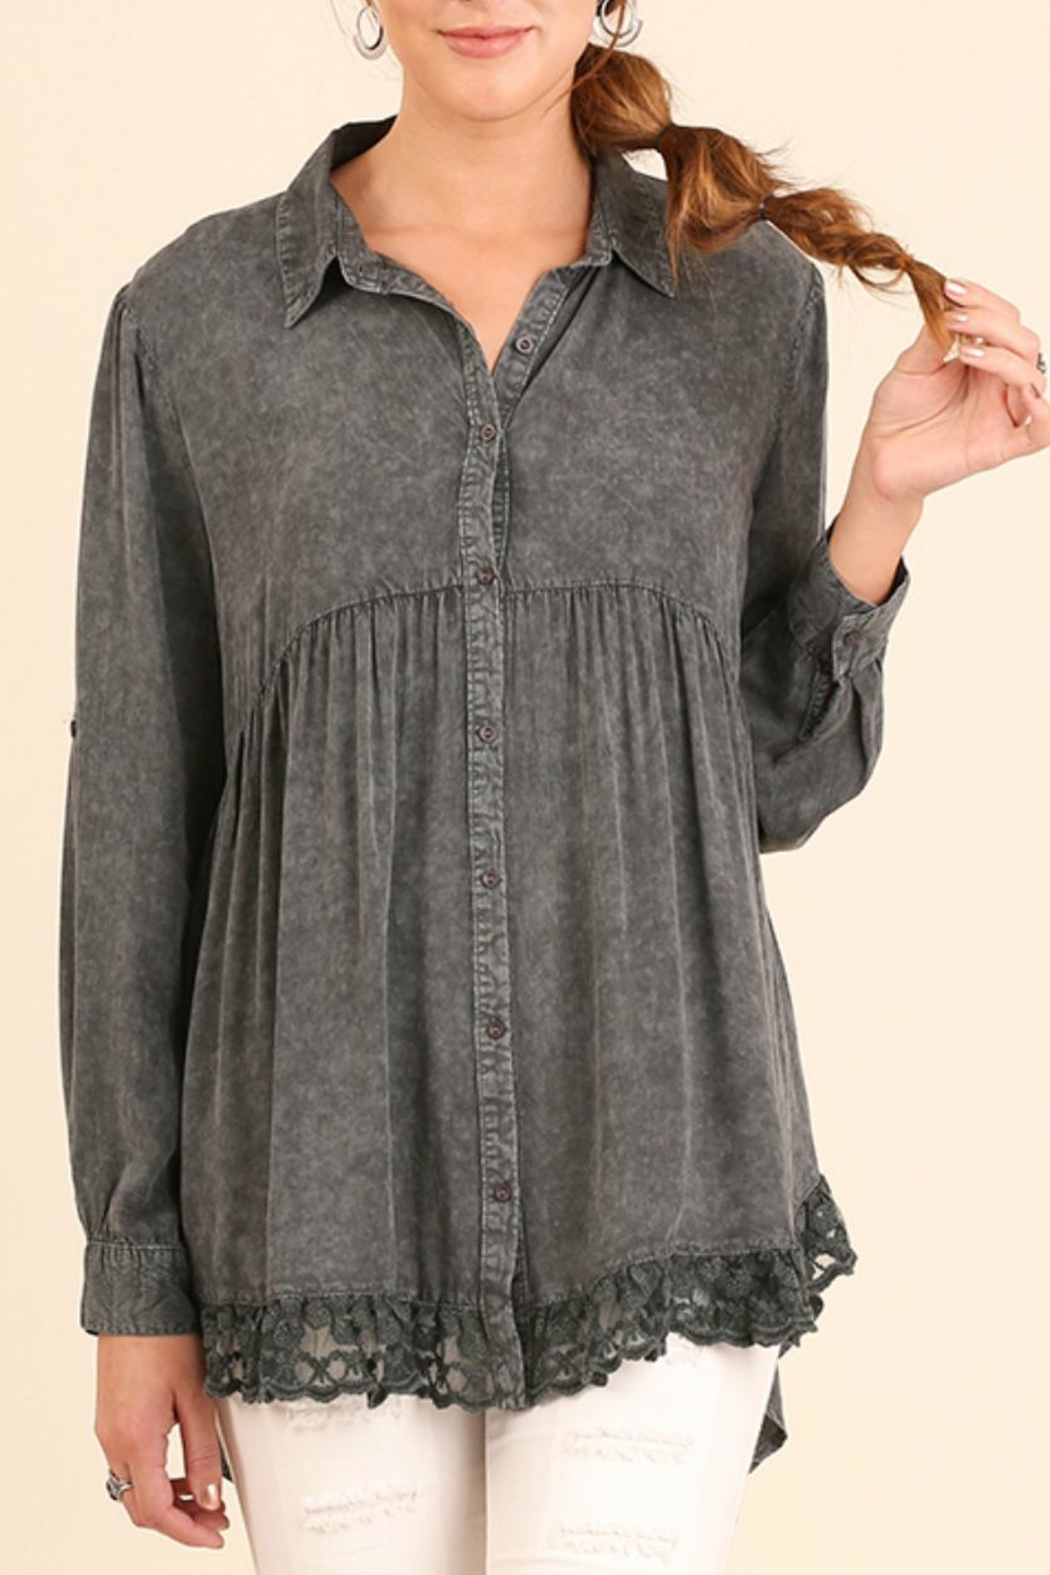 bab82fbf1ac102 Umgee USA Button Up Tunic from Colorado by Rock N  Roses Boutique ...